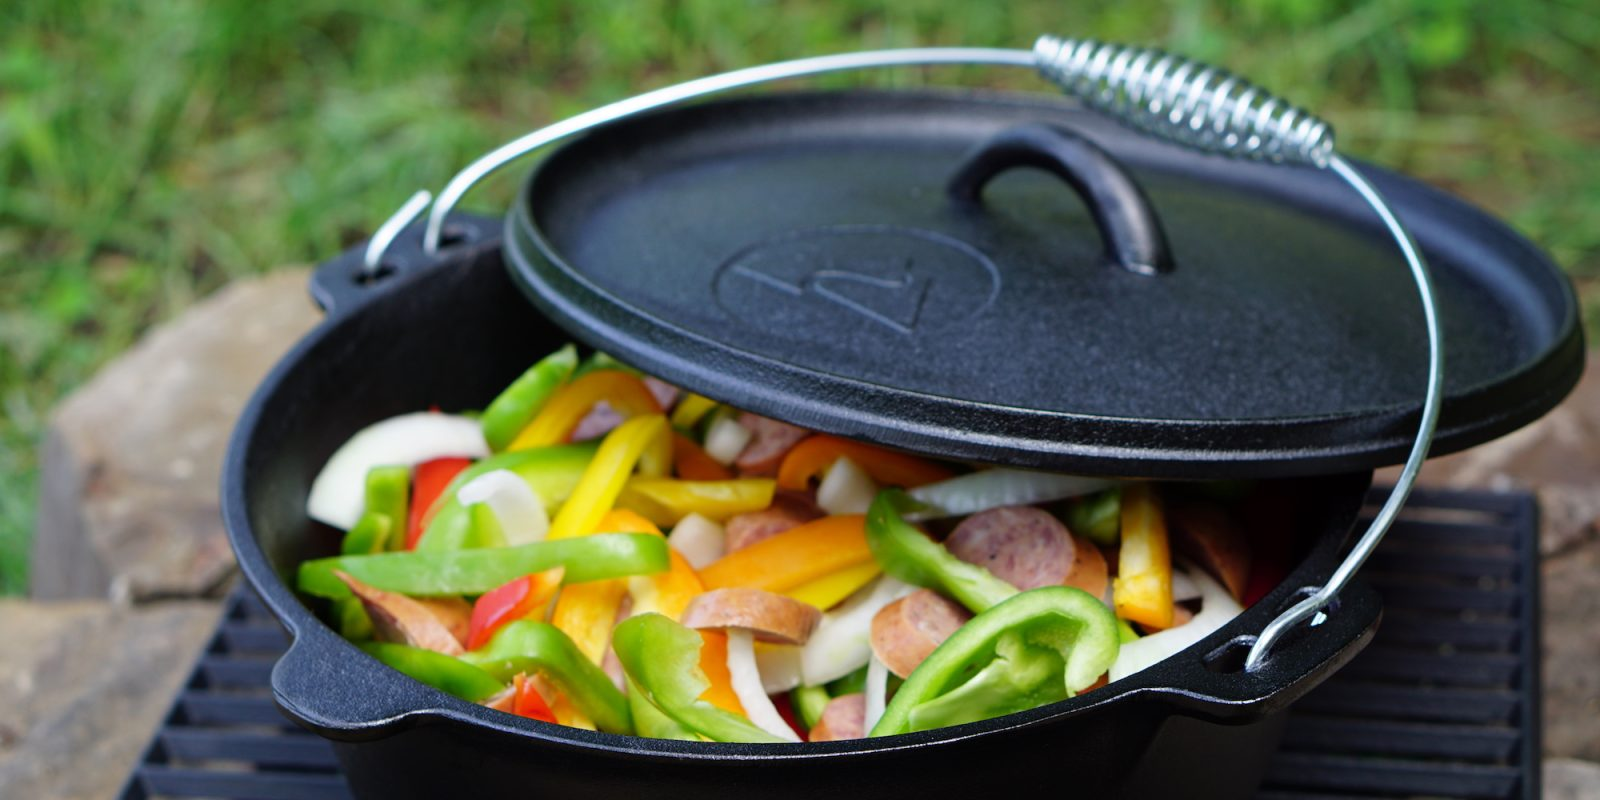 This 5-quart Cast Iron Dutch Oven is yours for just $15 (Reg. up to $26)